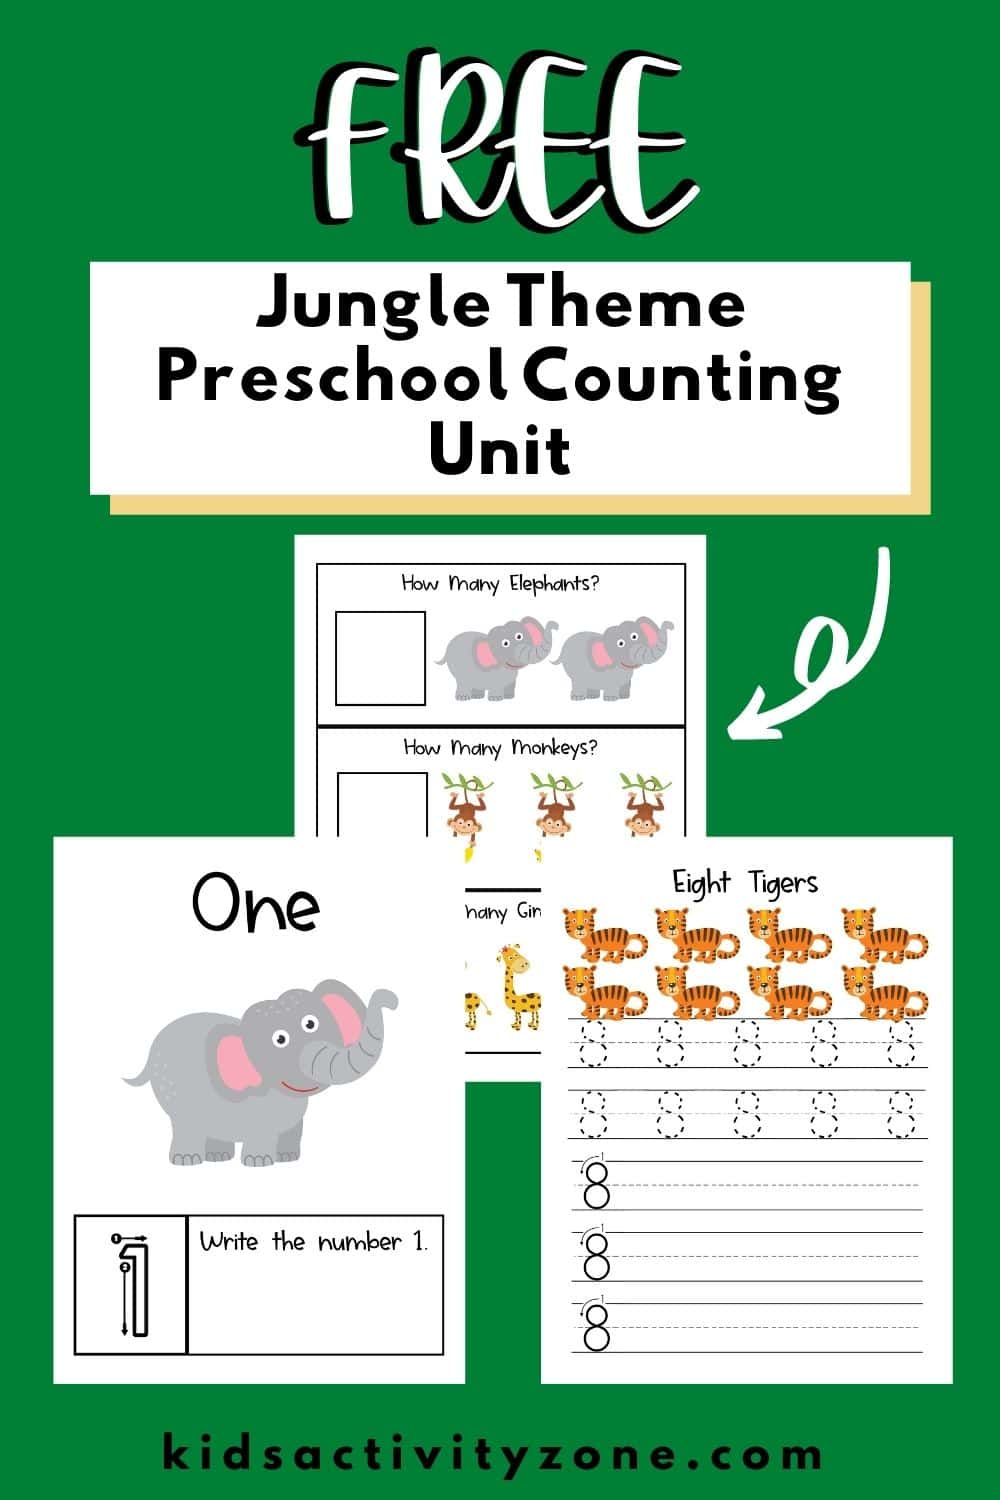 A fun jungle theme preschool unit that has a free printable counting book. This unit also has activities, books and more for each day to combine with the counting book. If your child loves animals they will love this preschool unit!